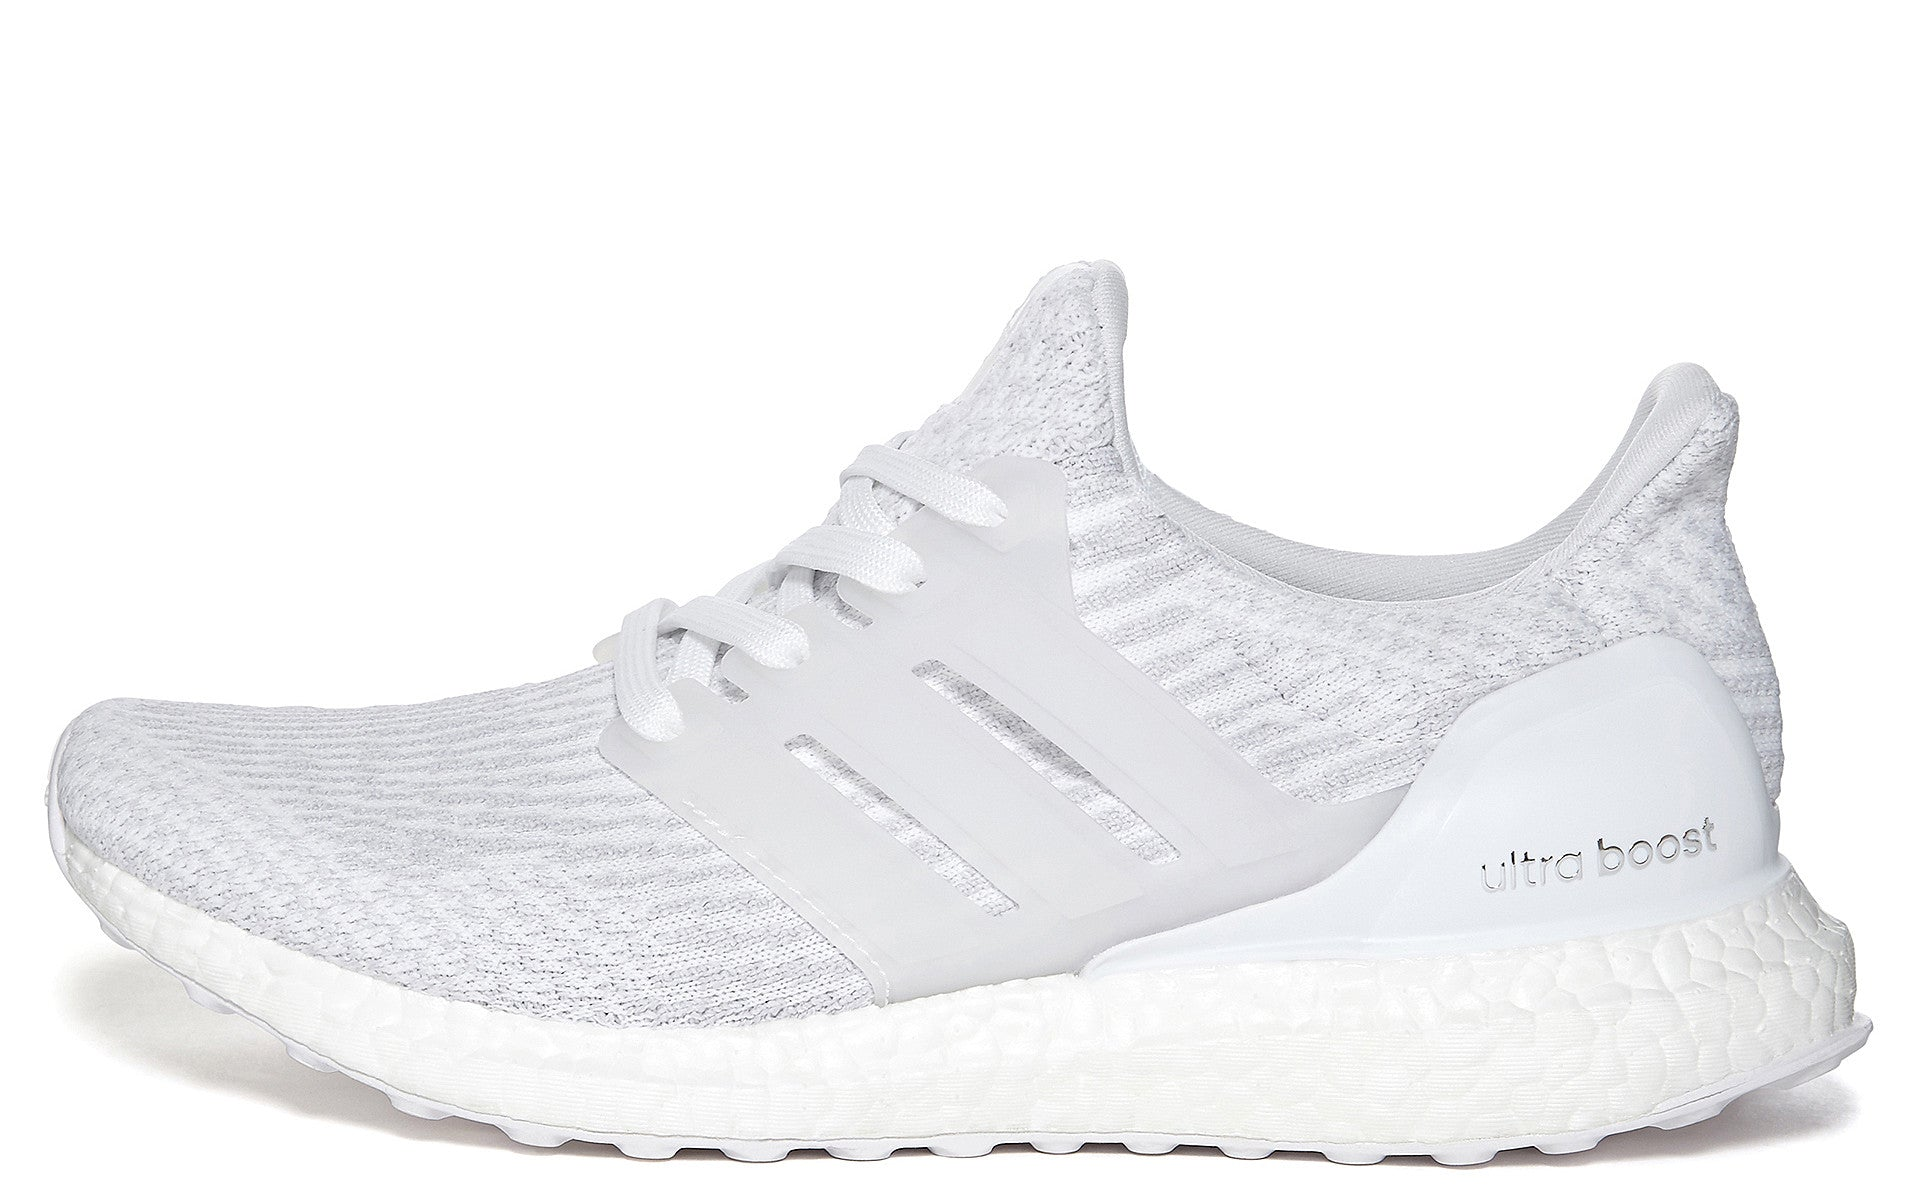 Ultra Boost 3.0 Oreo White Black Yeezy Trainers Shop